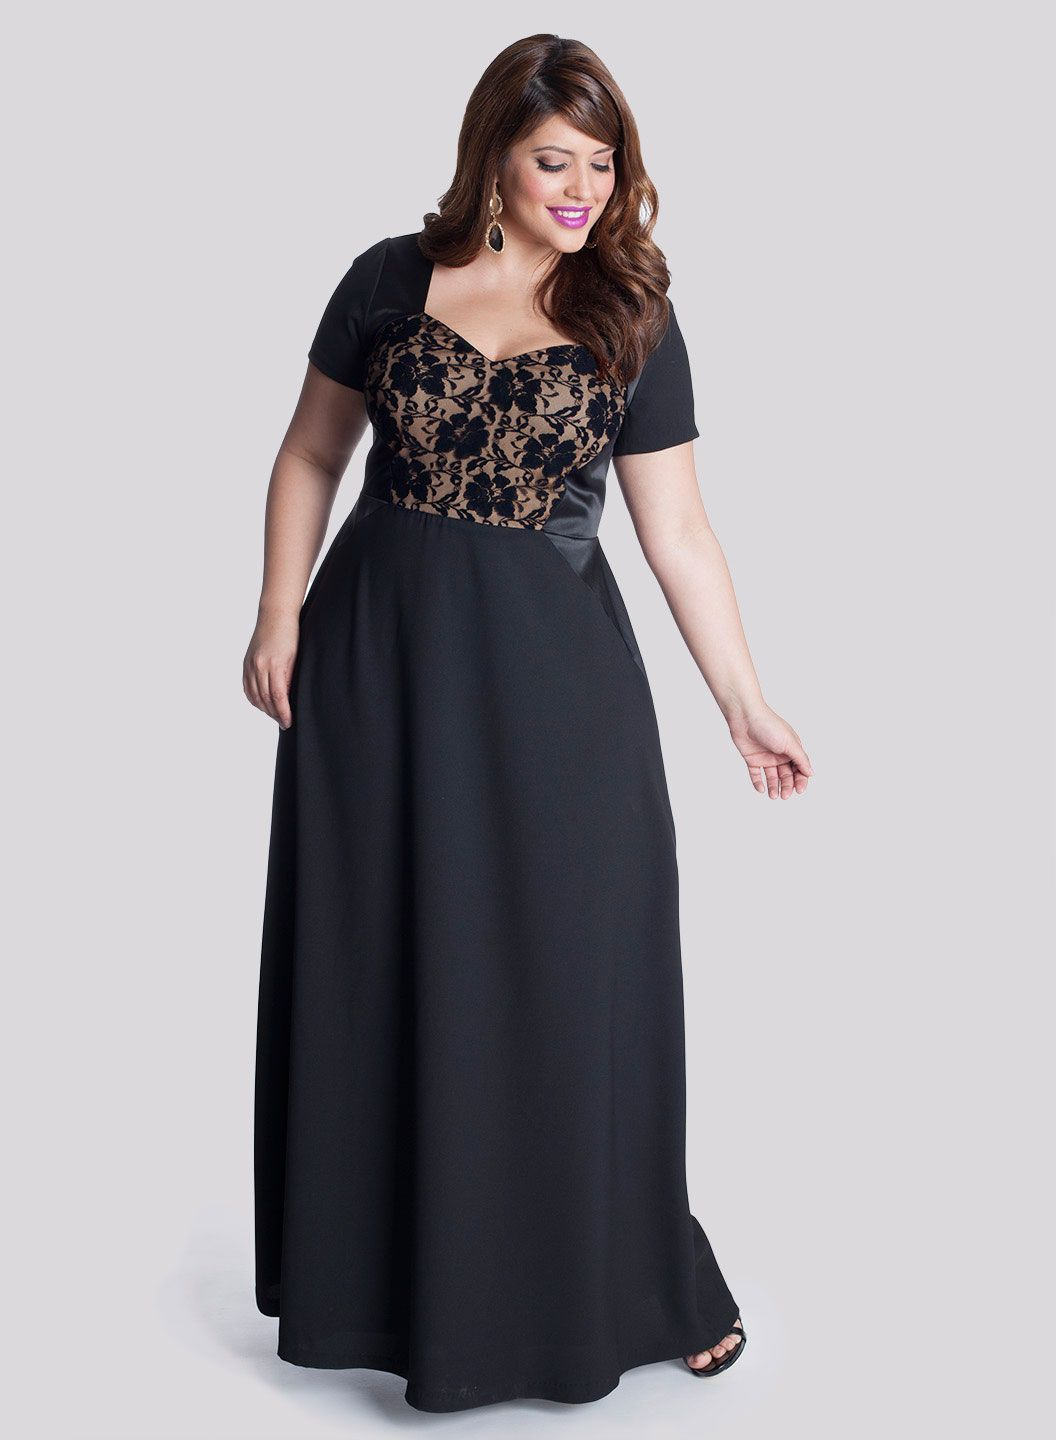 Glamorous dresses for plus size